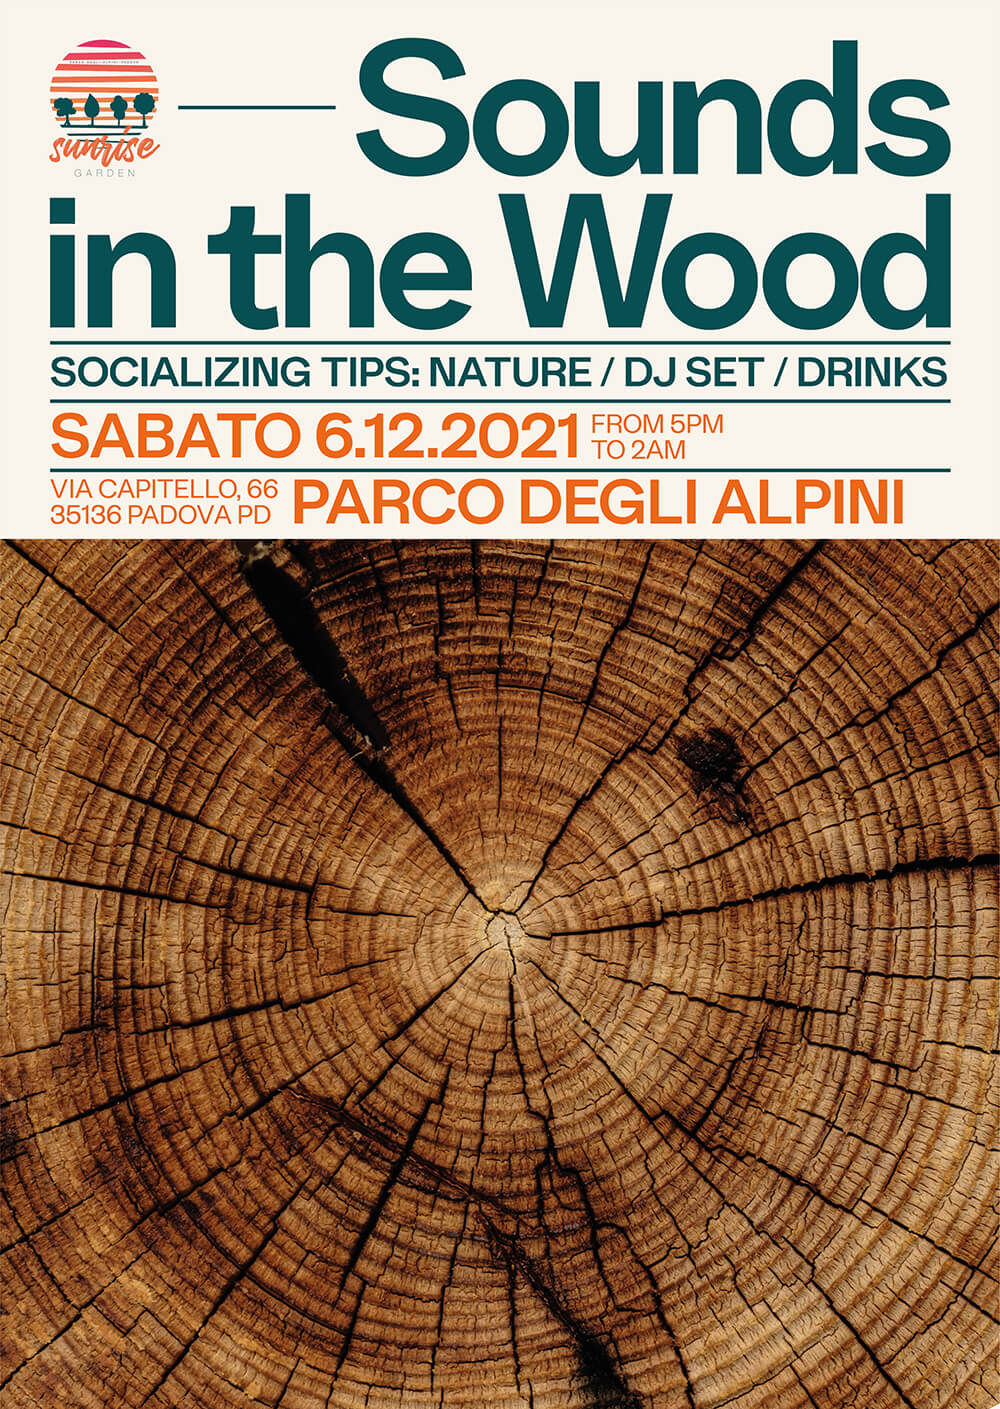 Sounds in the Wood Posters Series